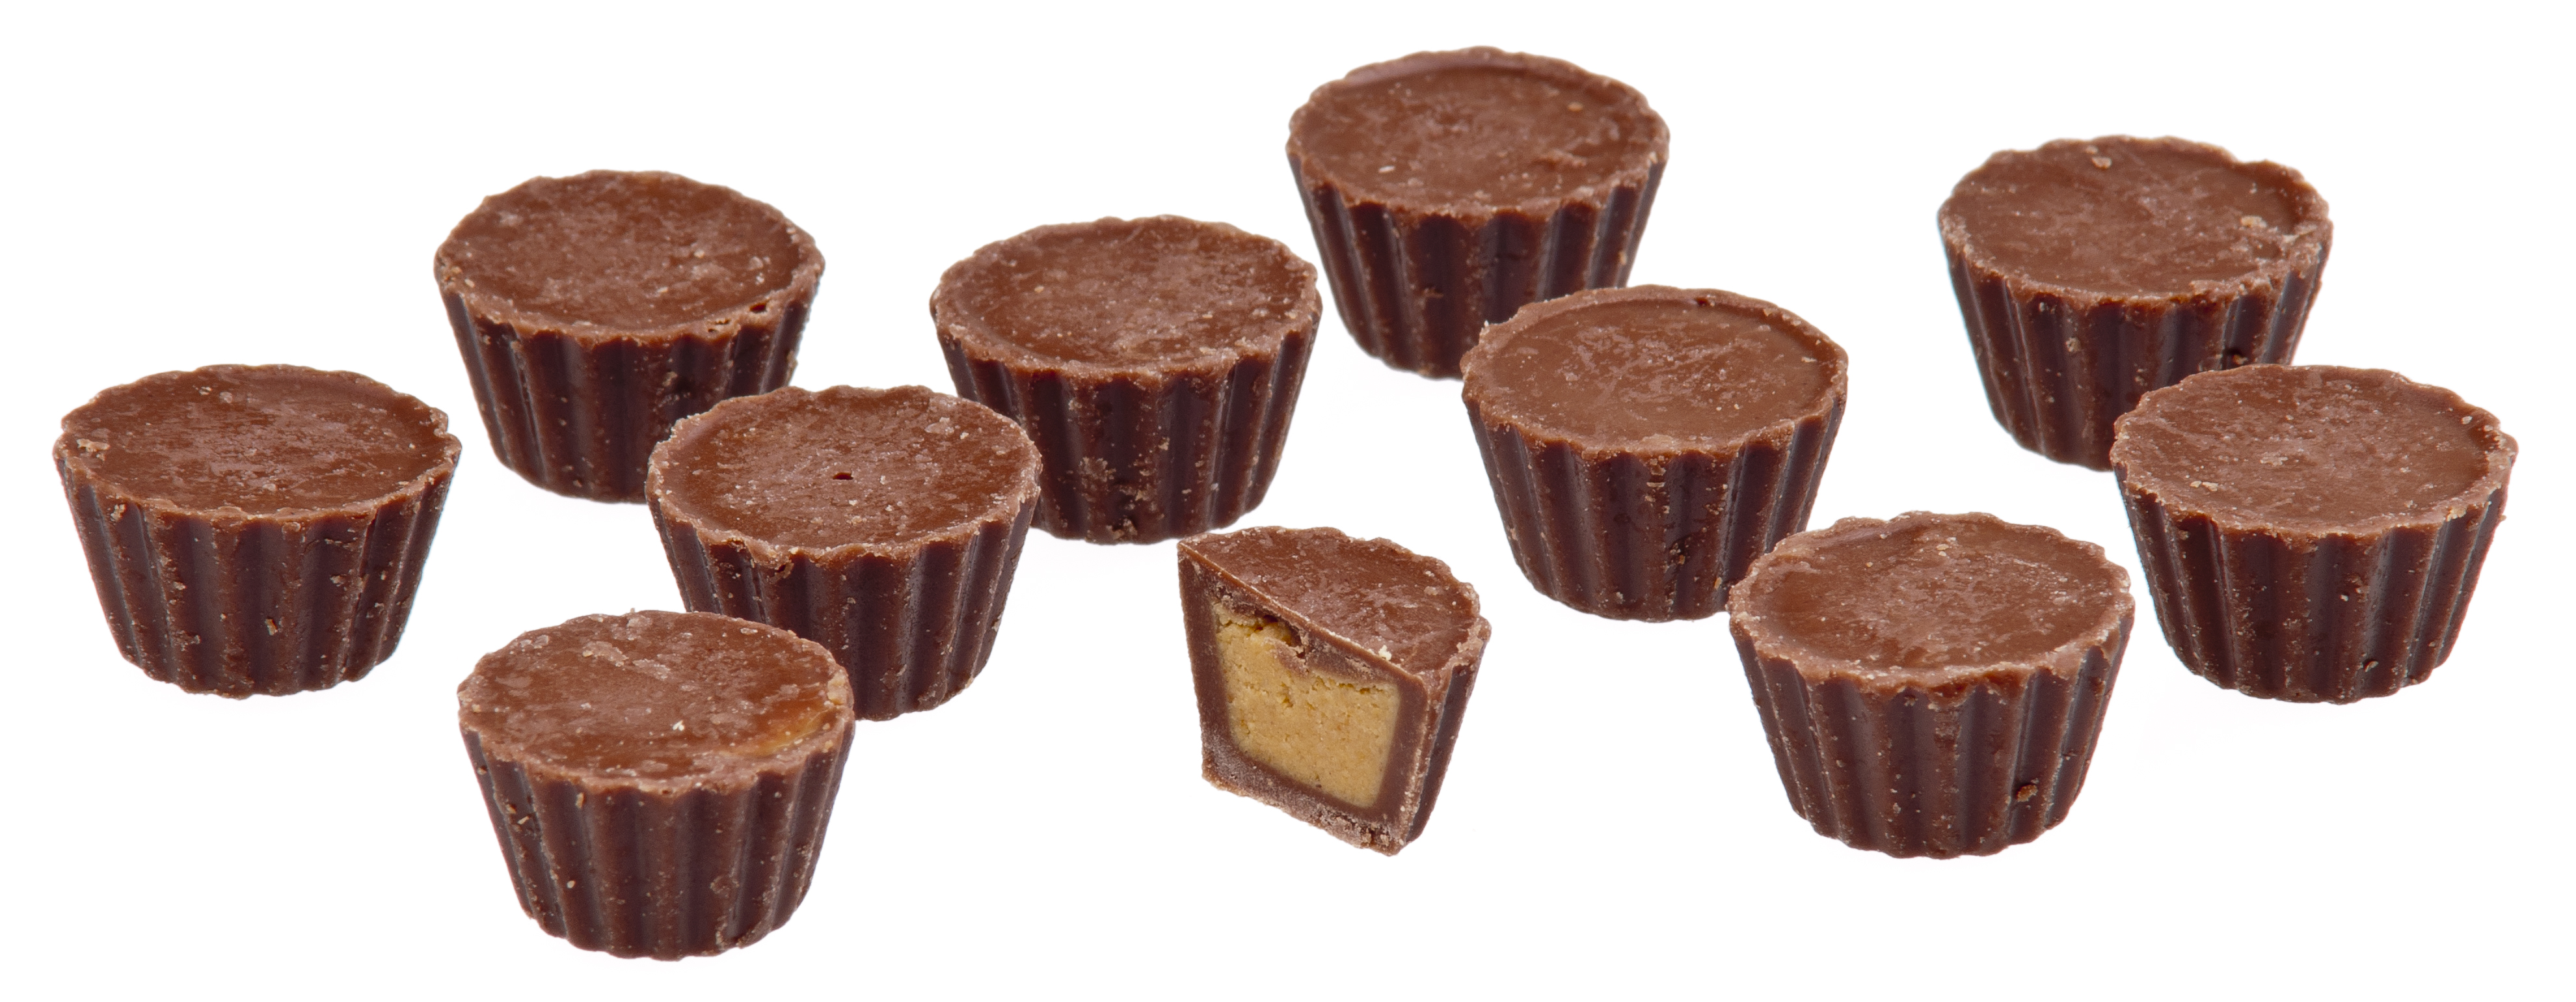 English: Reese's Peanut Butter Cups Minis.